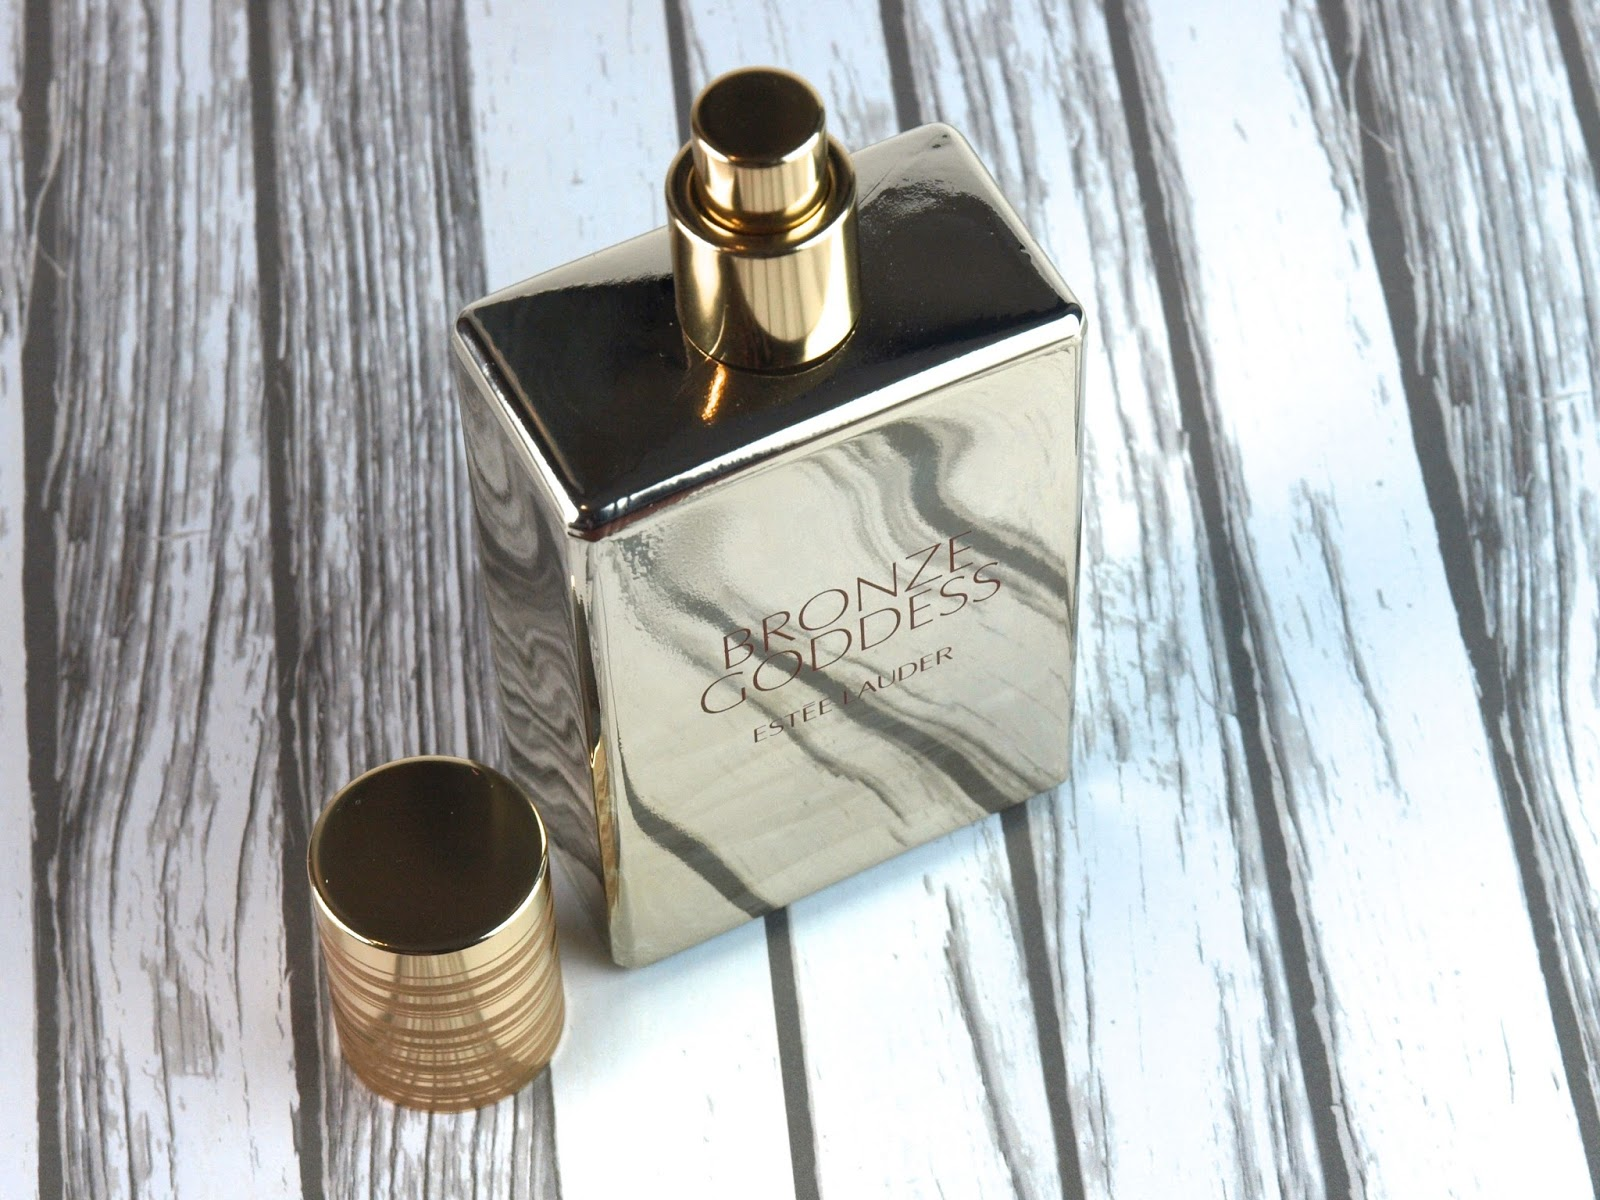 Estée Lauder Bronze Goddess Eau Fraiche Skinscent: Review